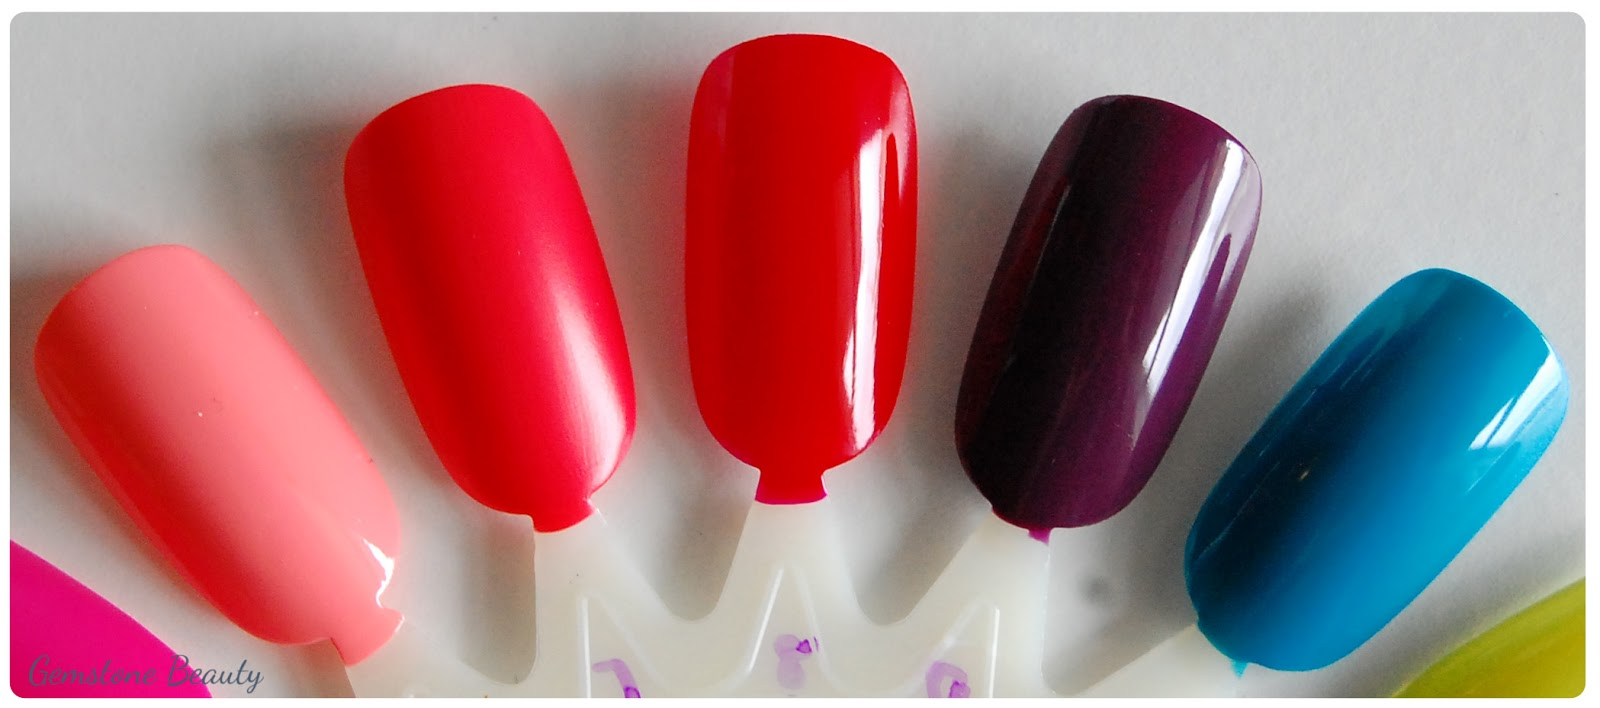 Gemstone Beauty: essence gel nail polish: Review + Swatches